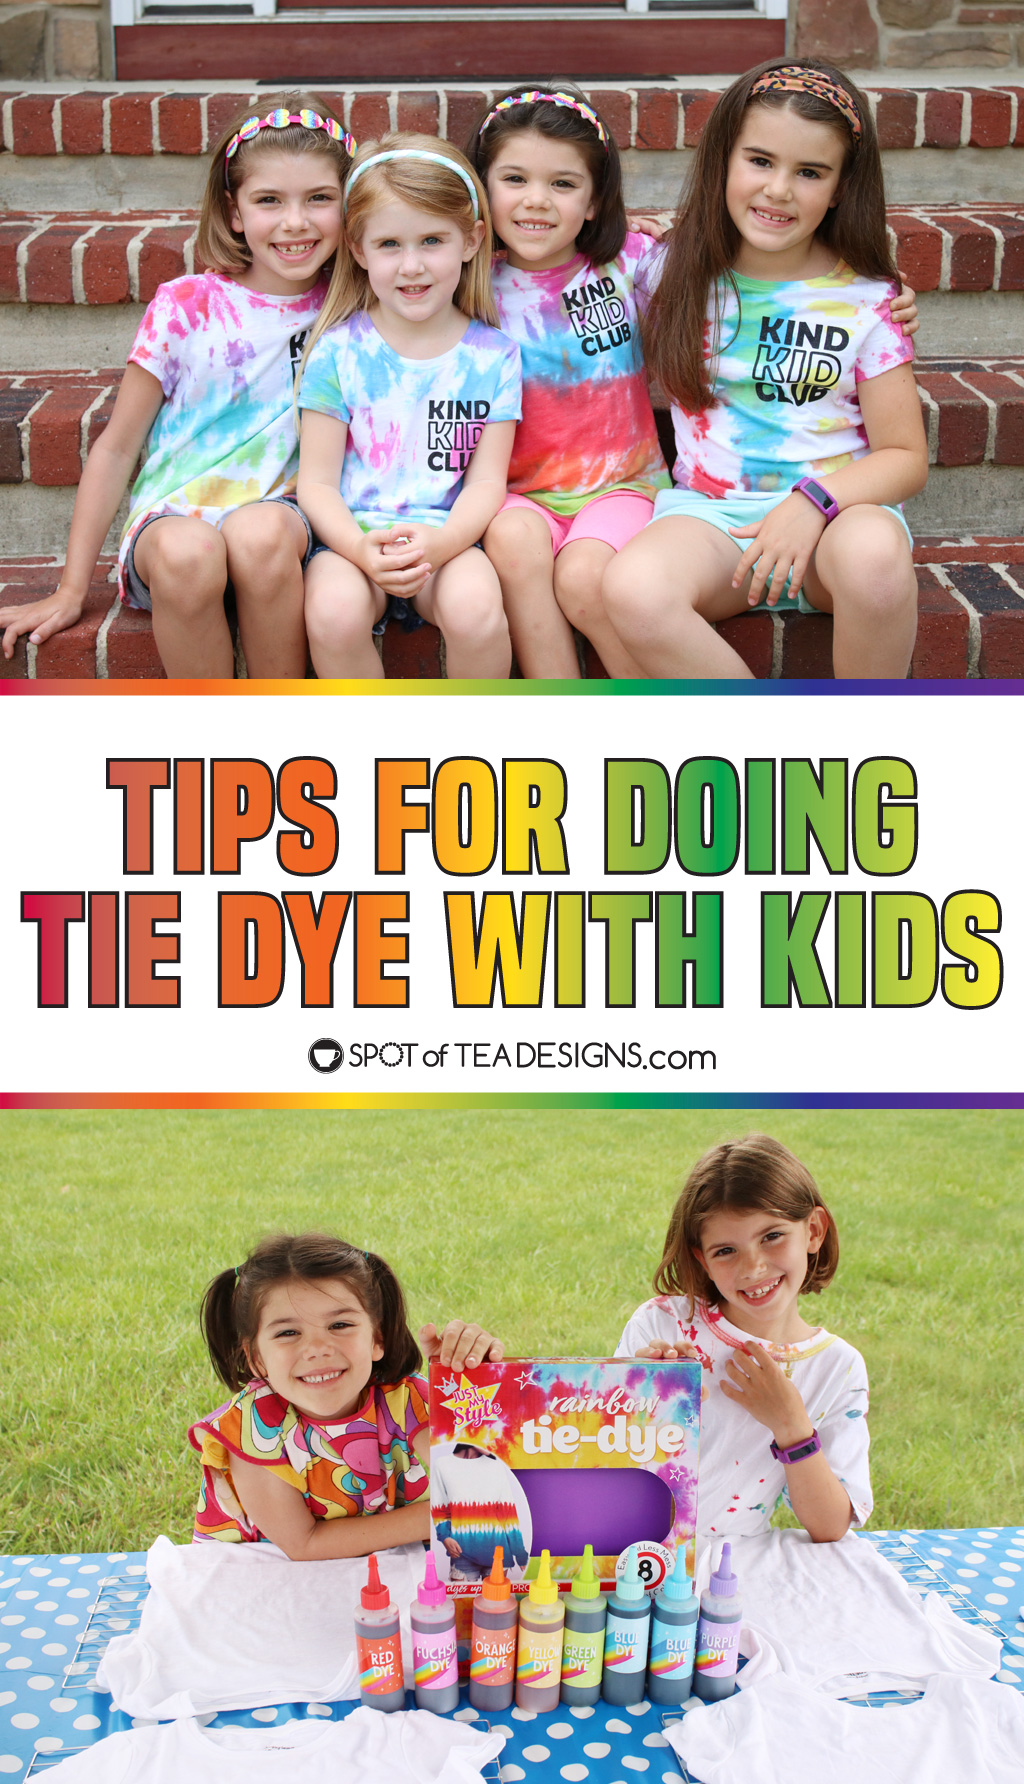 Tips for doing Tie Dye with Kids | spotofteadesigns.com